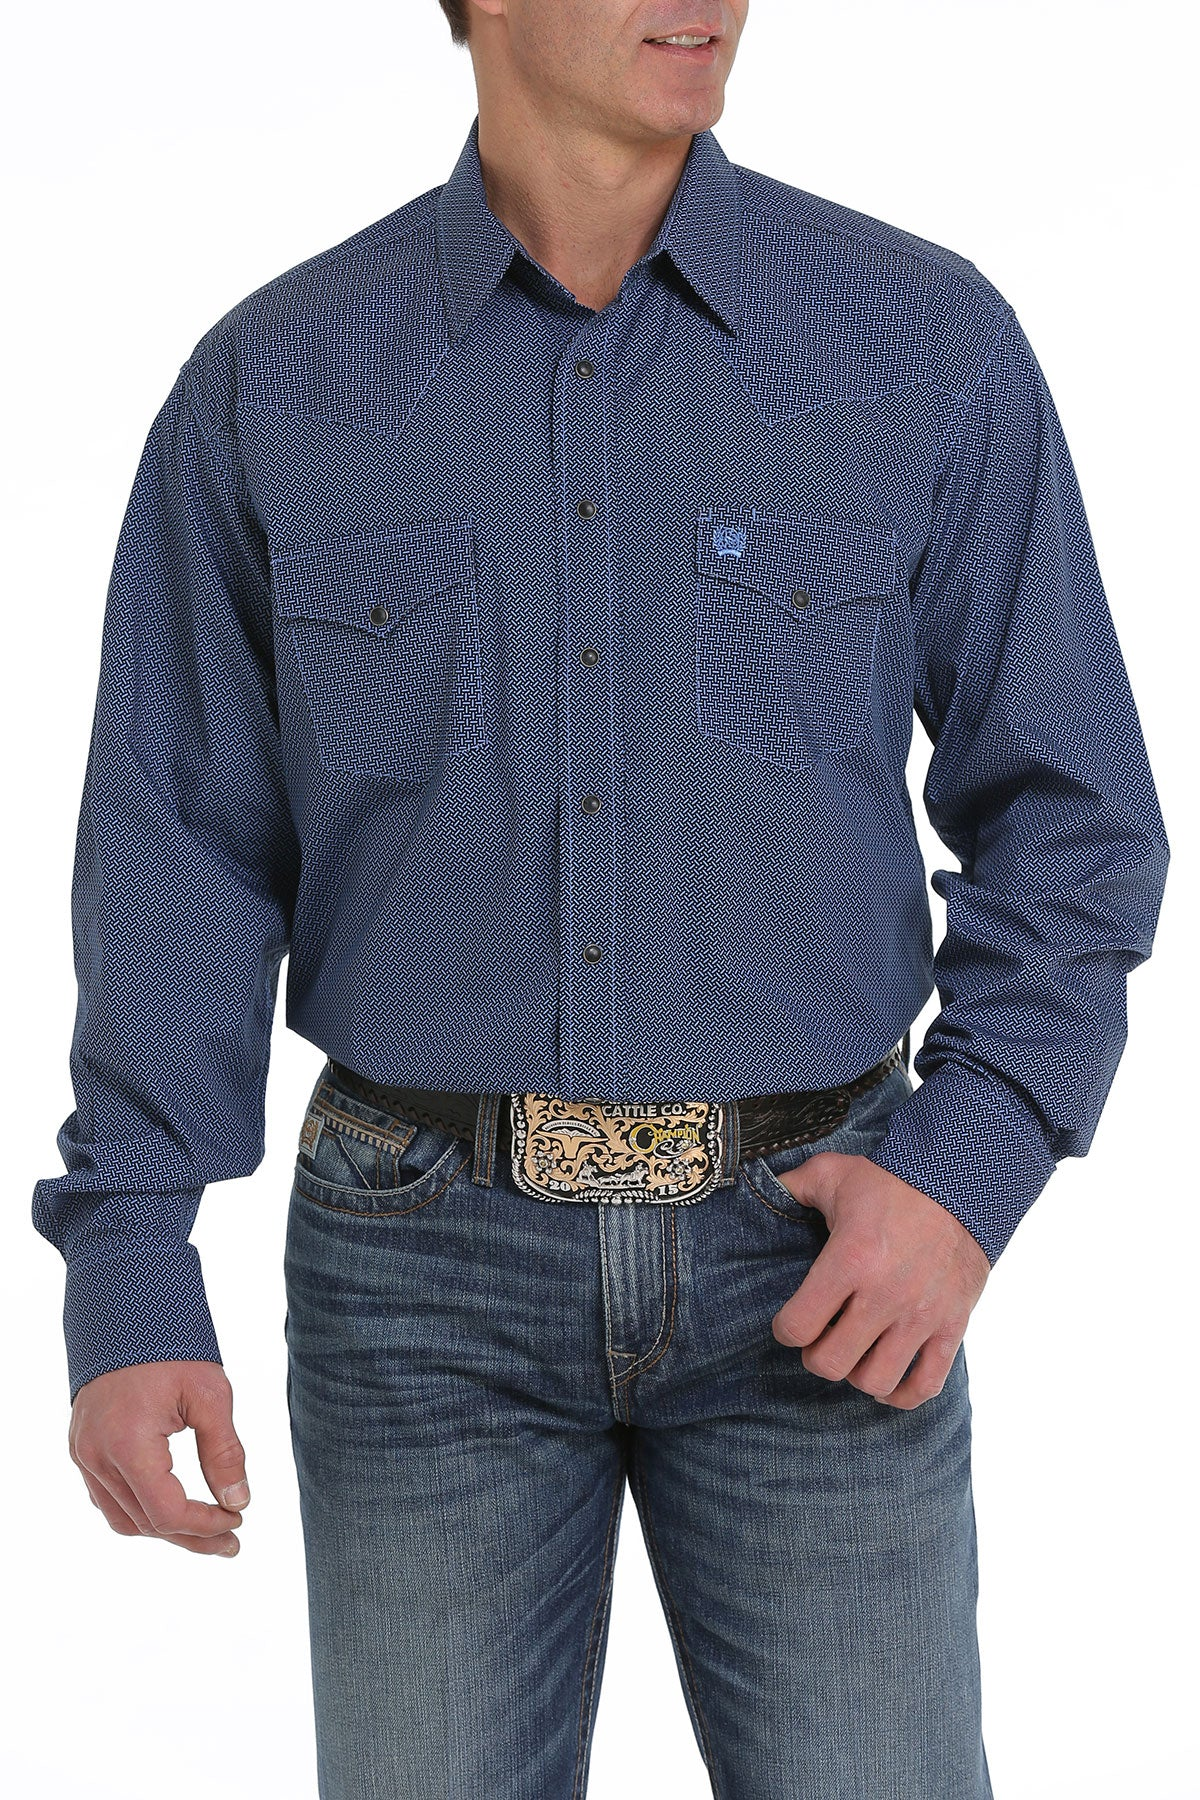 Cinch Classic Fit Blue Medallion Print Men's Pearl Snap